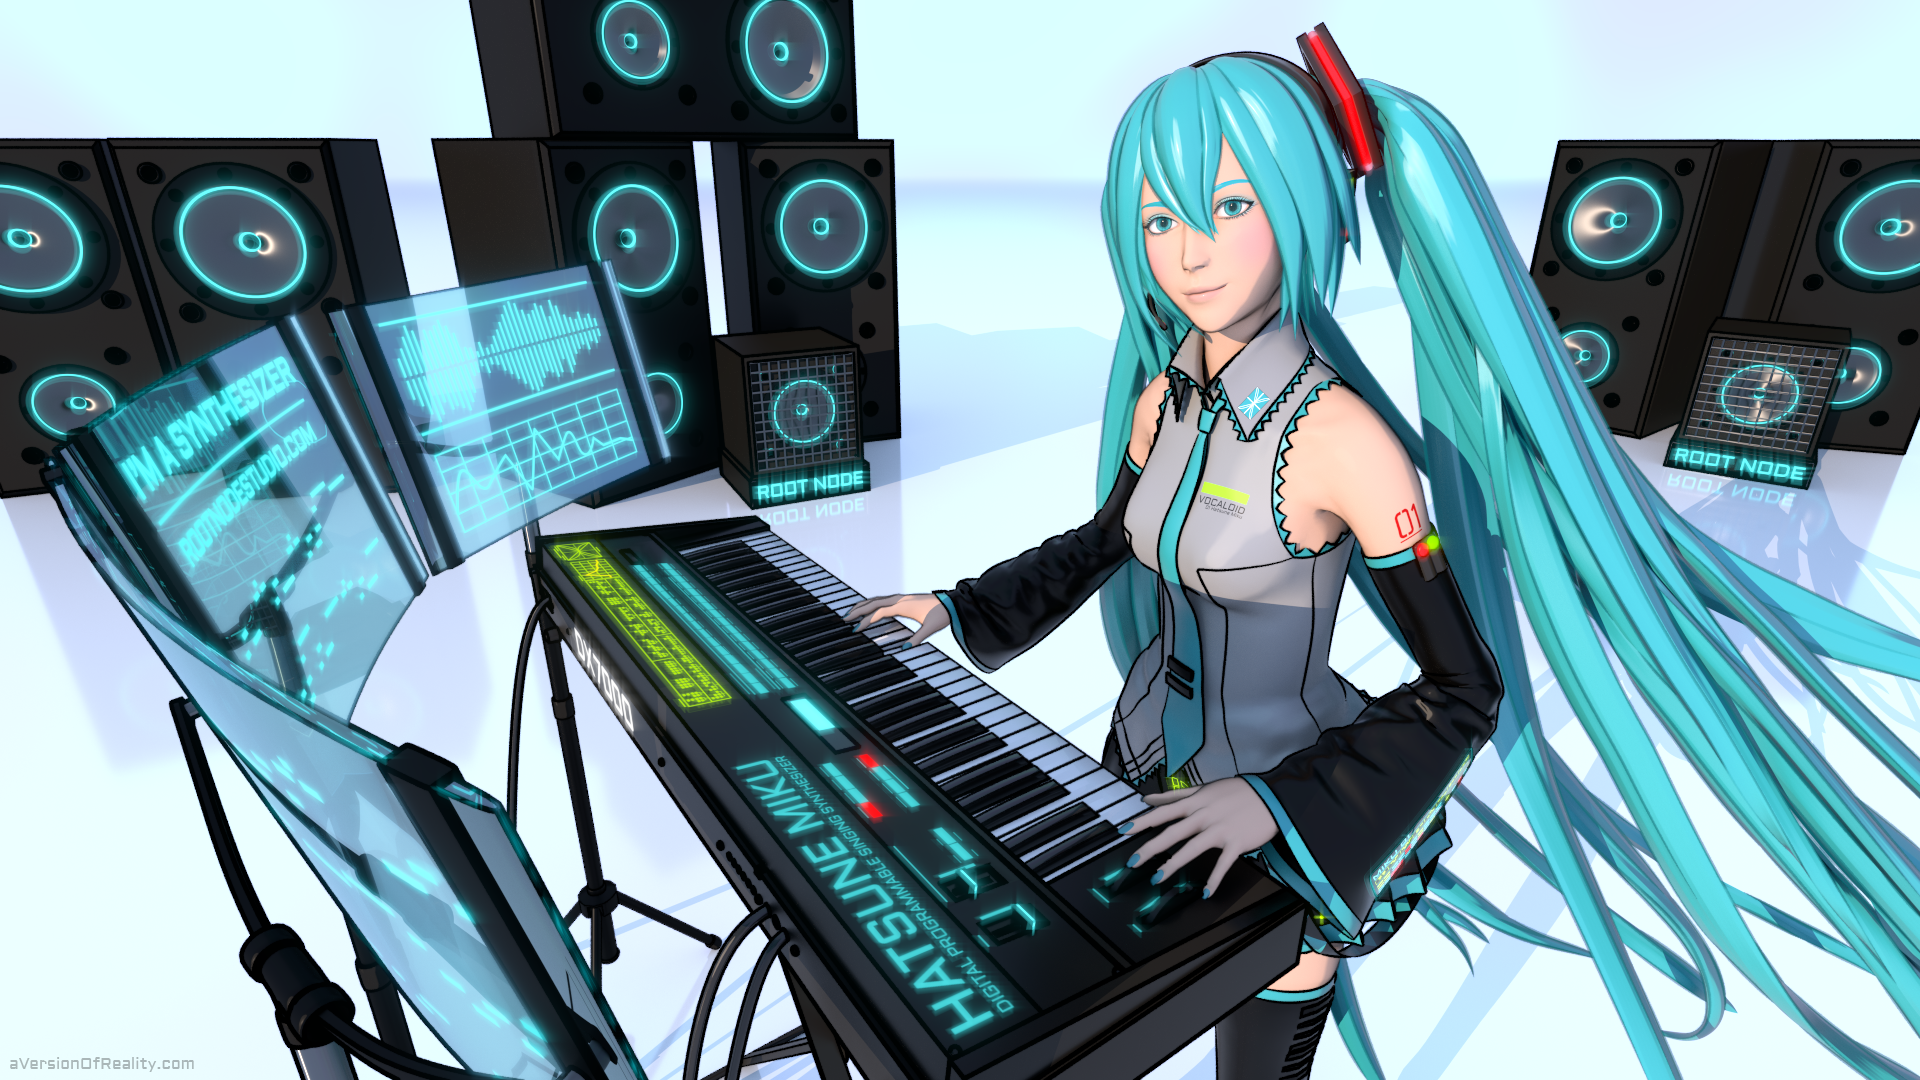 Hatsune Miku: I'm a Synthesizer Cover Art by aVersionOfReality